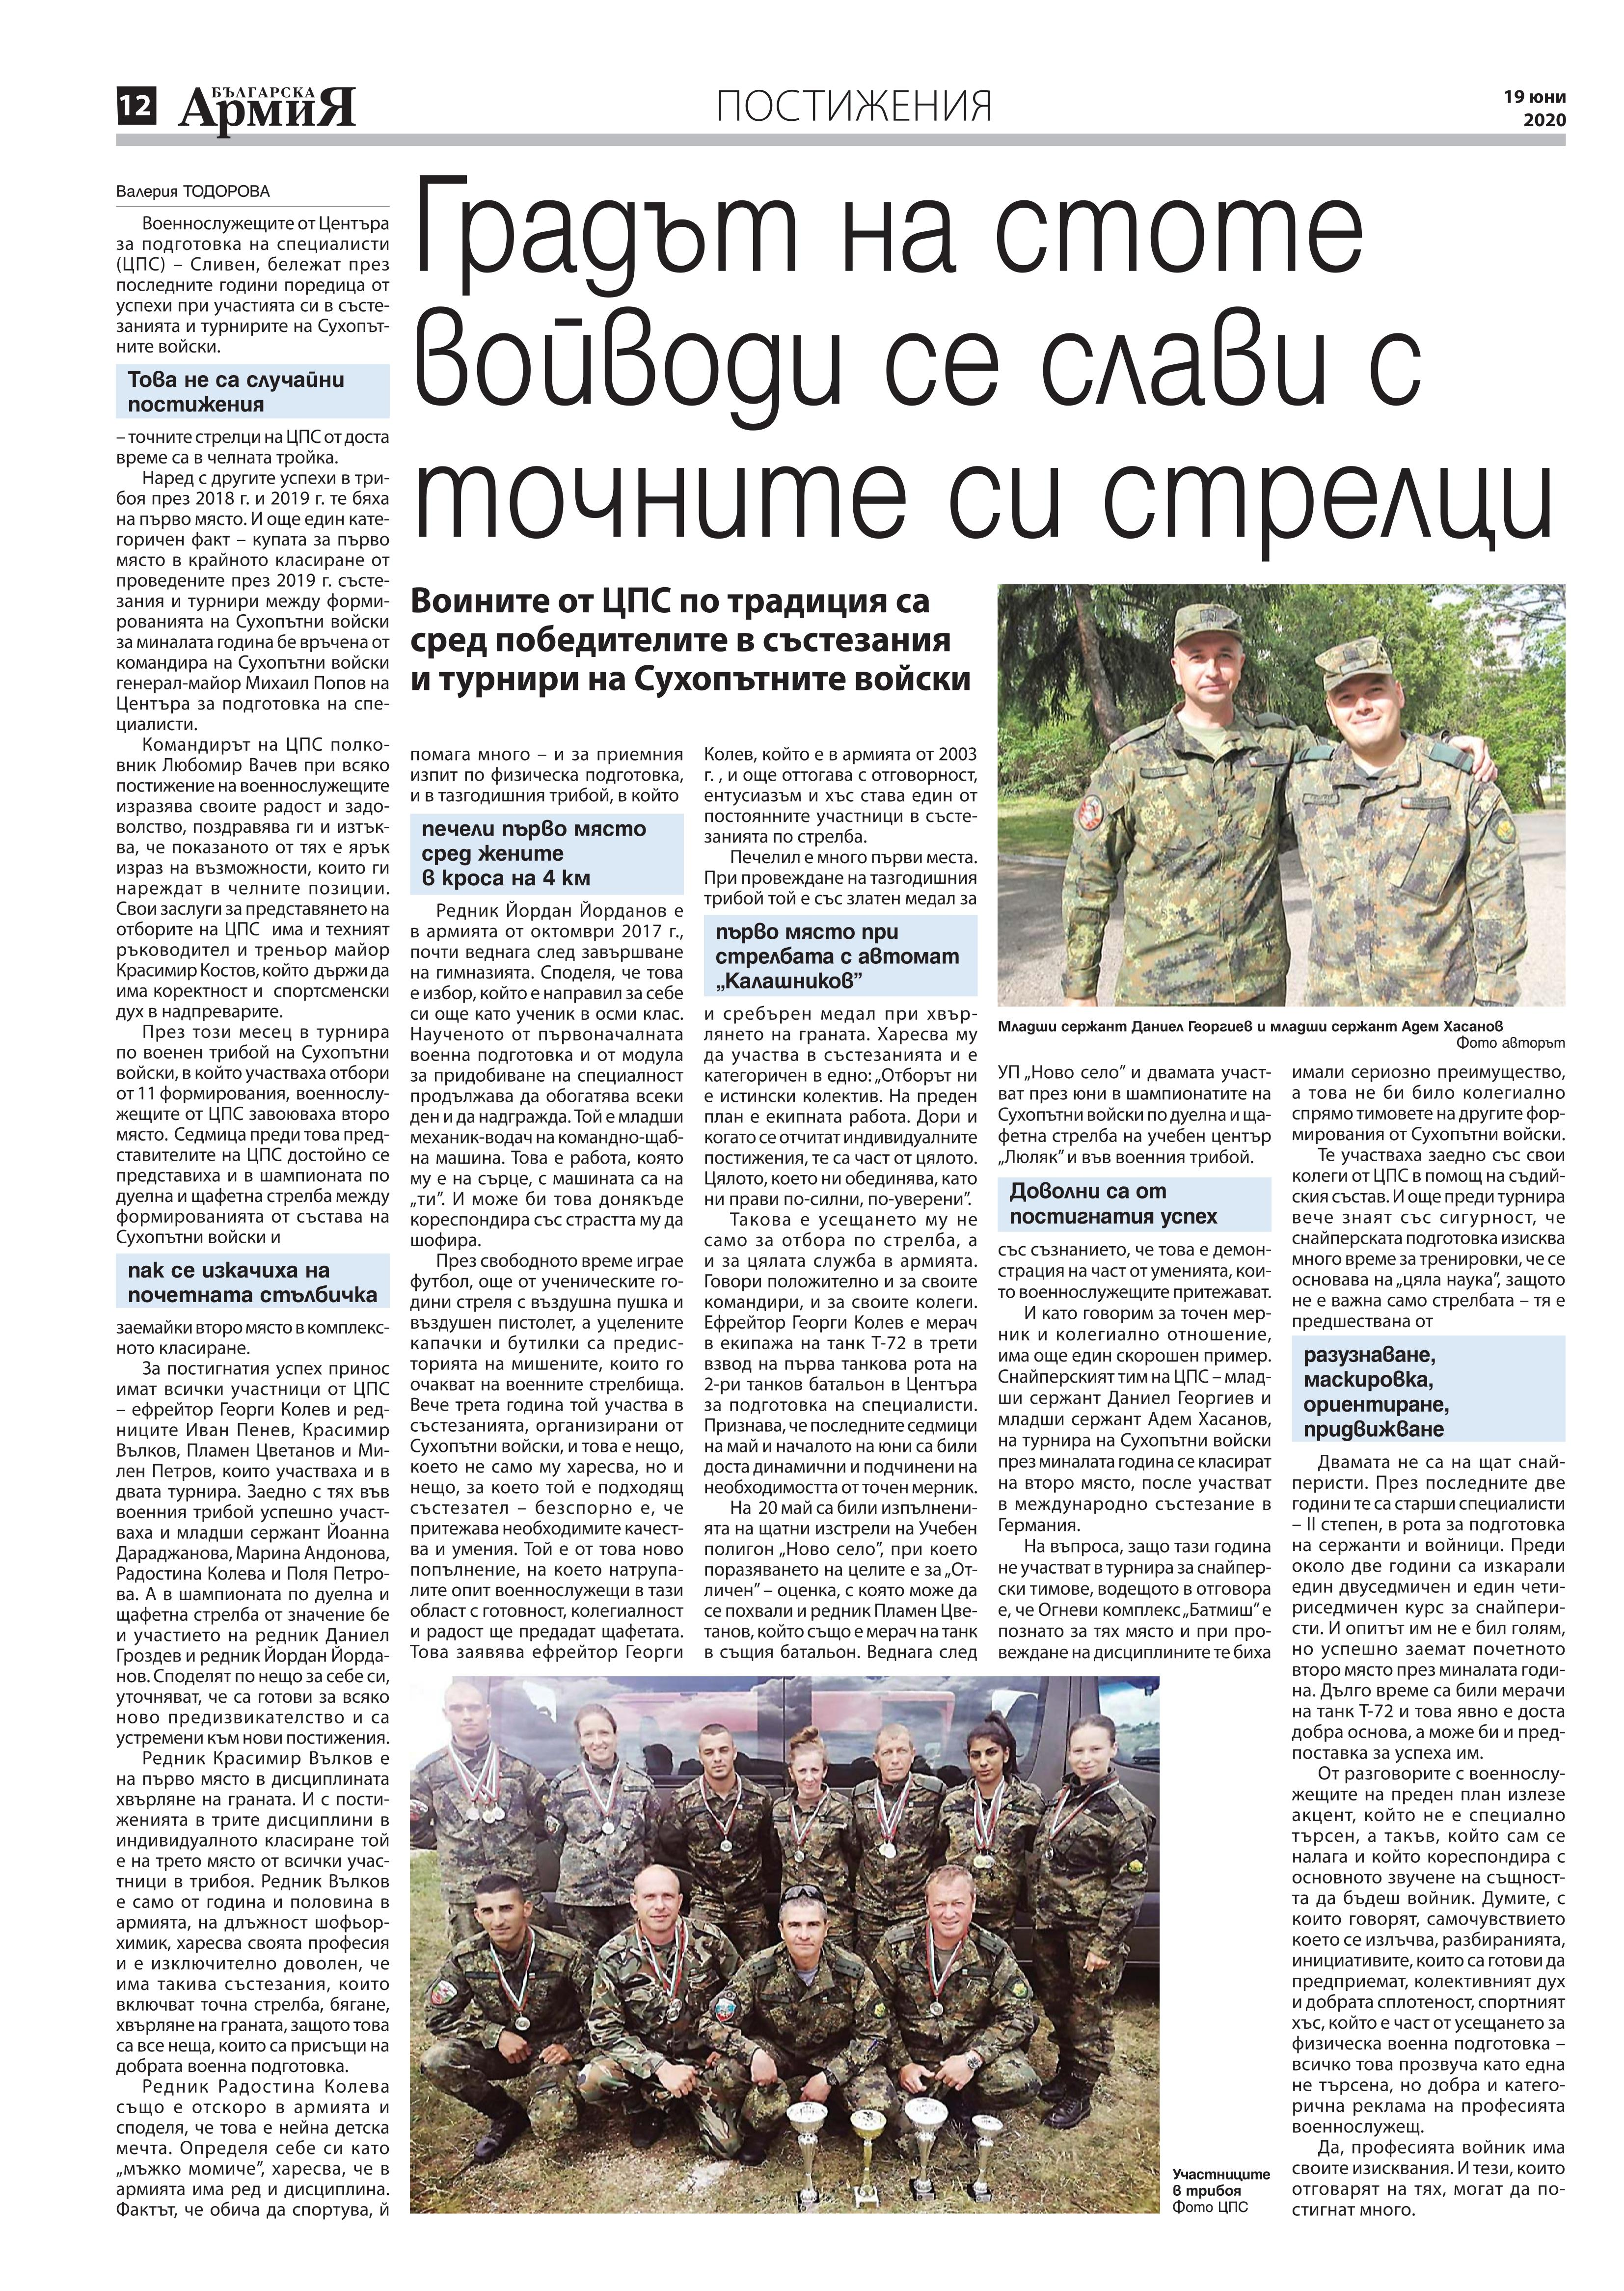 https://www.armymedia.bg/wp-content/uploads/2015/06/12.page1_-143.jpg